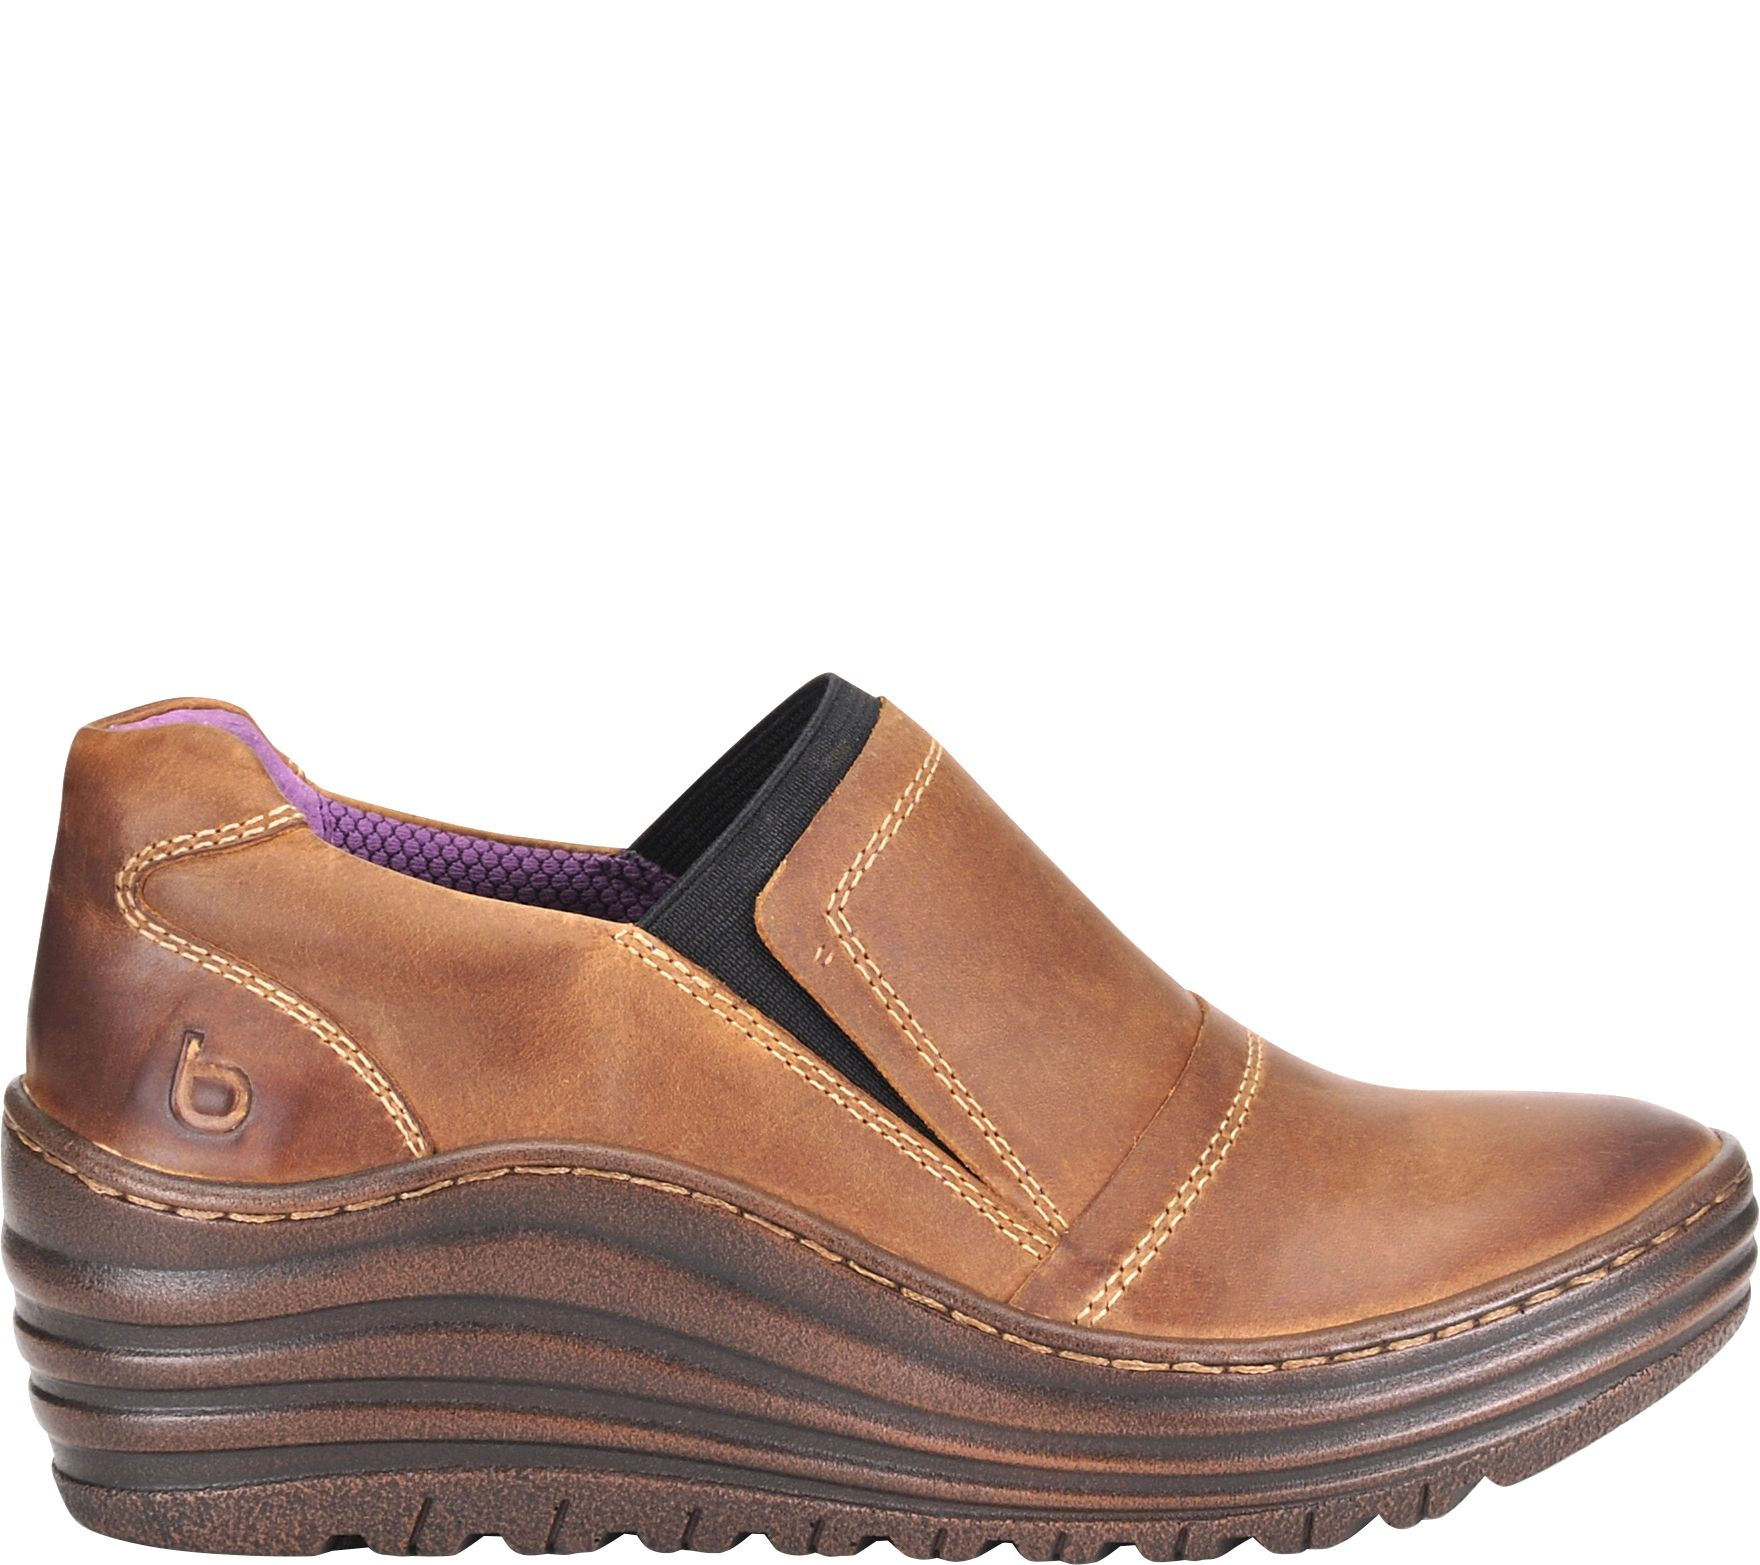 b49c45b85bf5d9 Bionica Leather Slip On Loafers - Grinnell - Page 1 — QVC.com